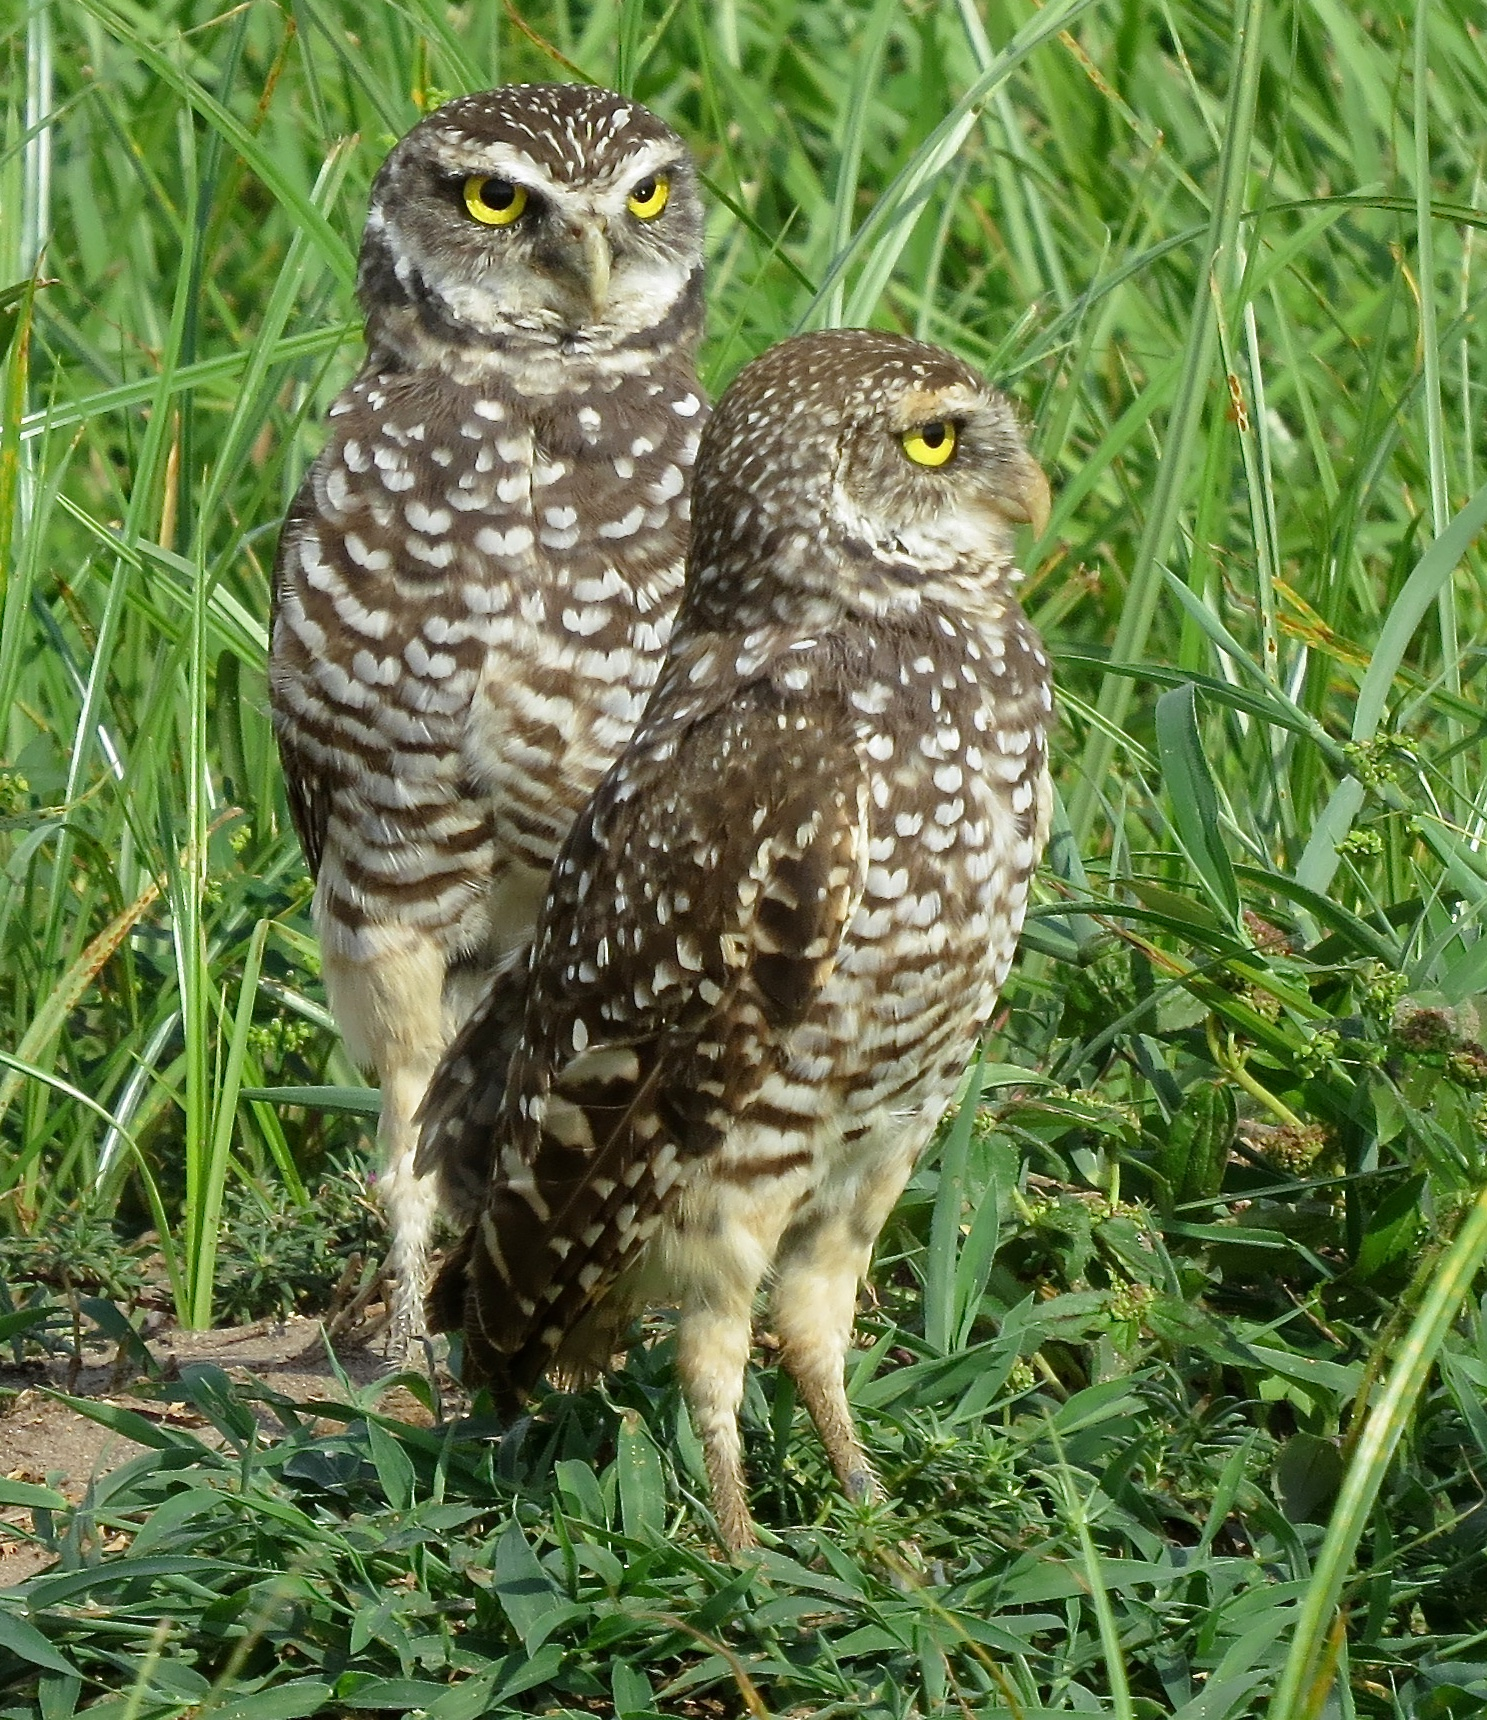 Burrowing owls in the neighborhood again birder 39 s journey for Do owls eat fish